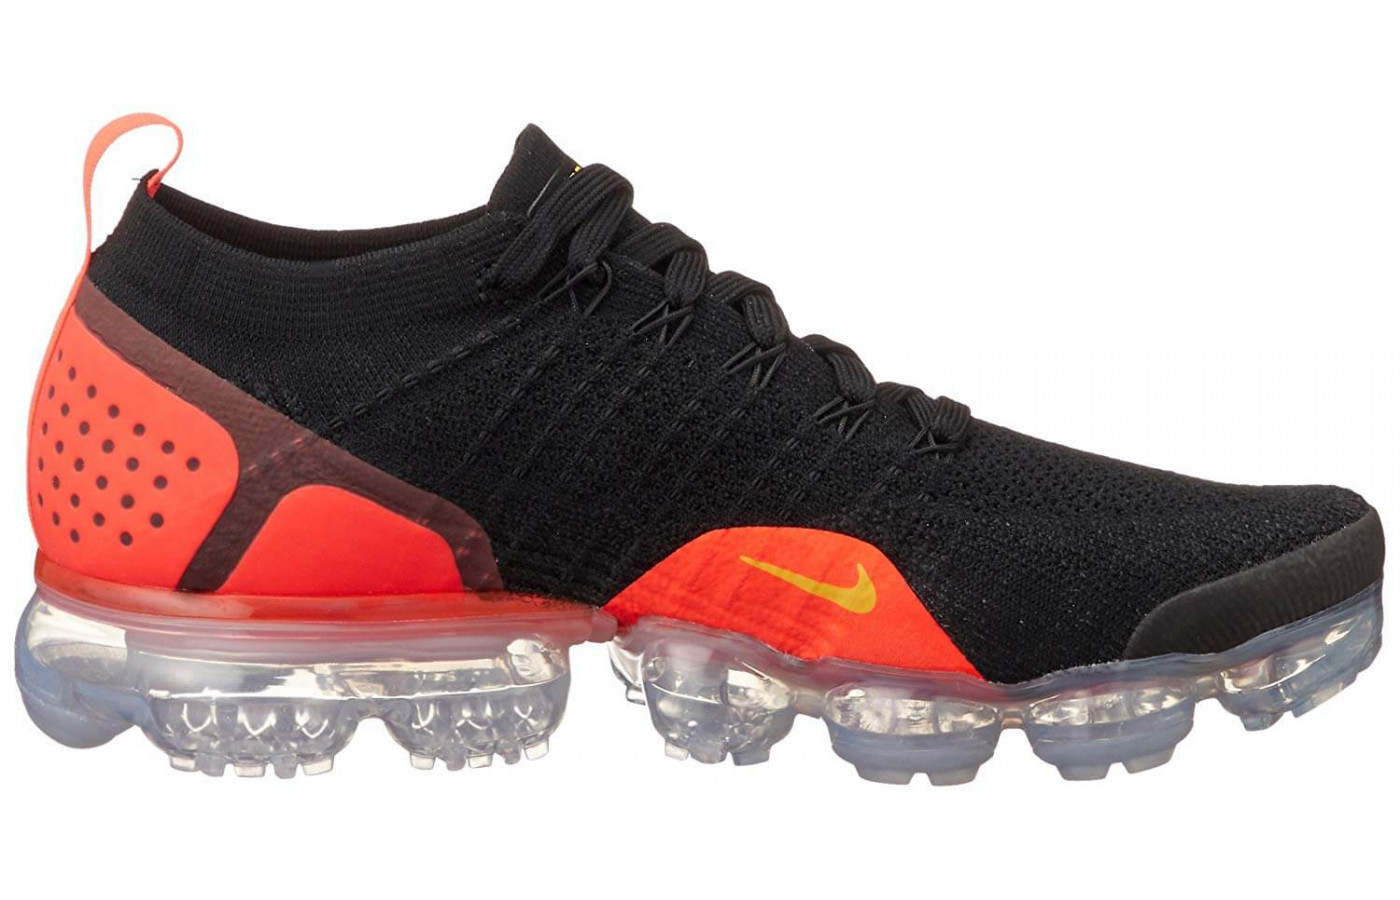 Nike Air VaporMax Flyknit 2 side